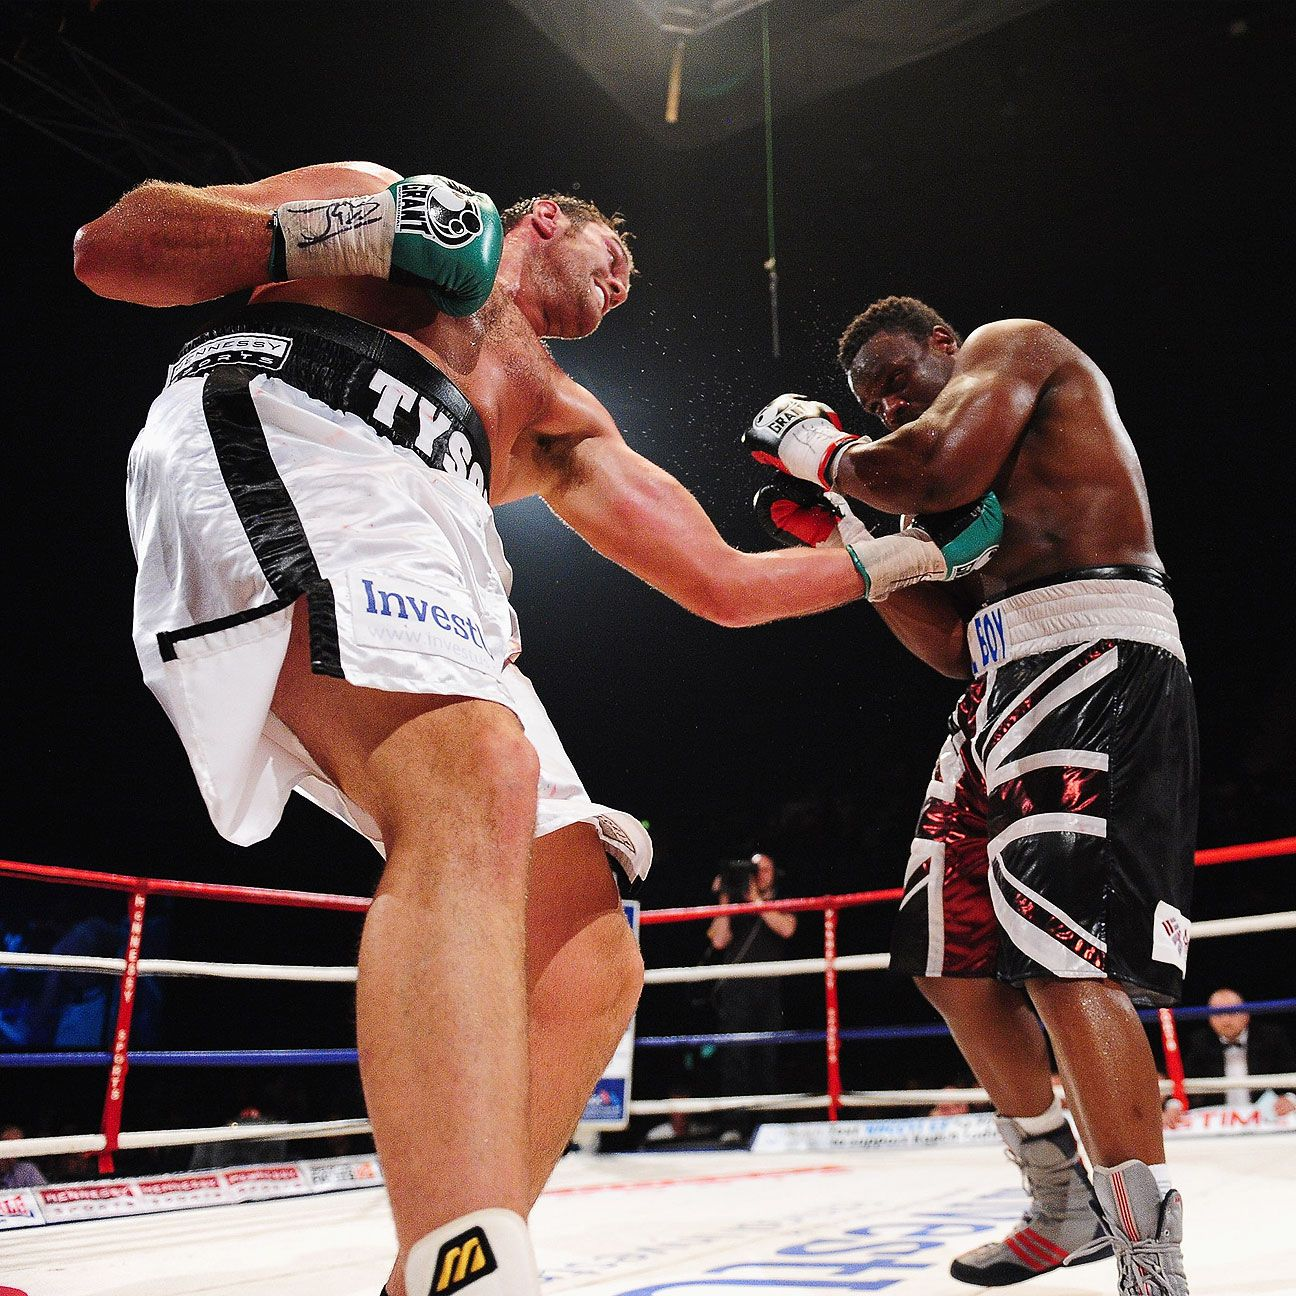 Tyson Fury, Dereck Chisora Meet For A Chance To Get